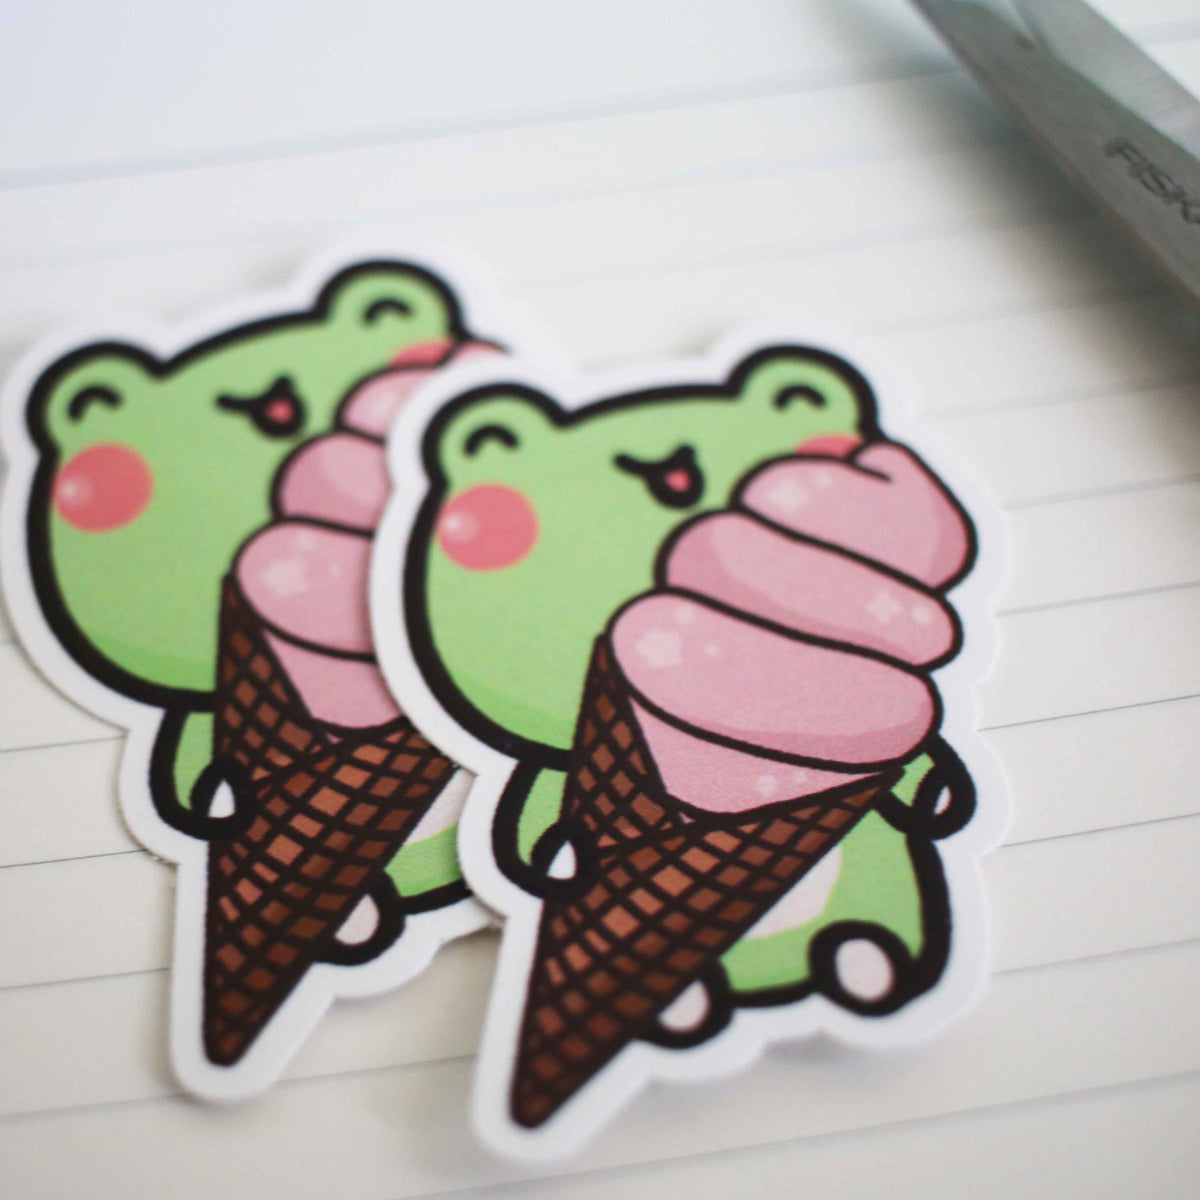 Lili Ice Cream Vinyl Sticker